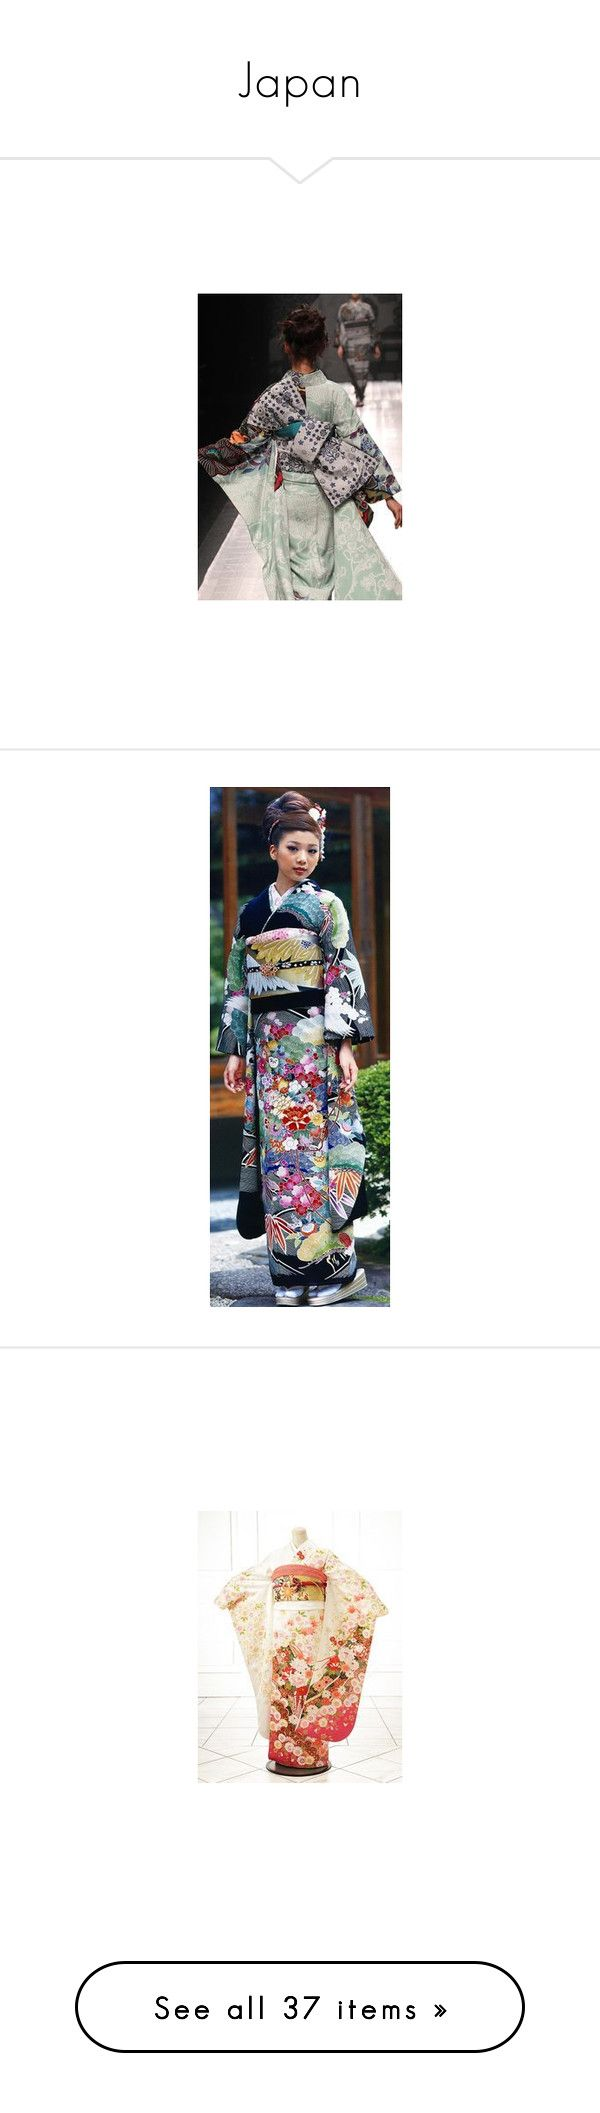 """""""Japan"""" by floriane97 ❤ liked on Polyvore featuring intimates, robes, dressing gown, kimono bathrobe, robe kimono, kimono bath robe, kimono dressing gown, kimono robe, jeans and brown denim jeans"""